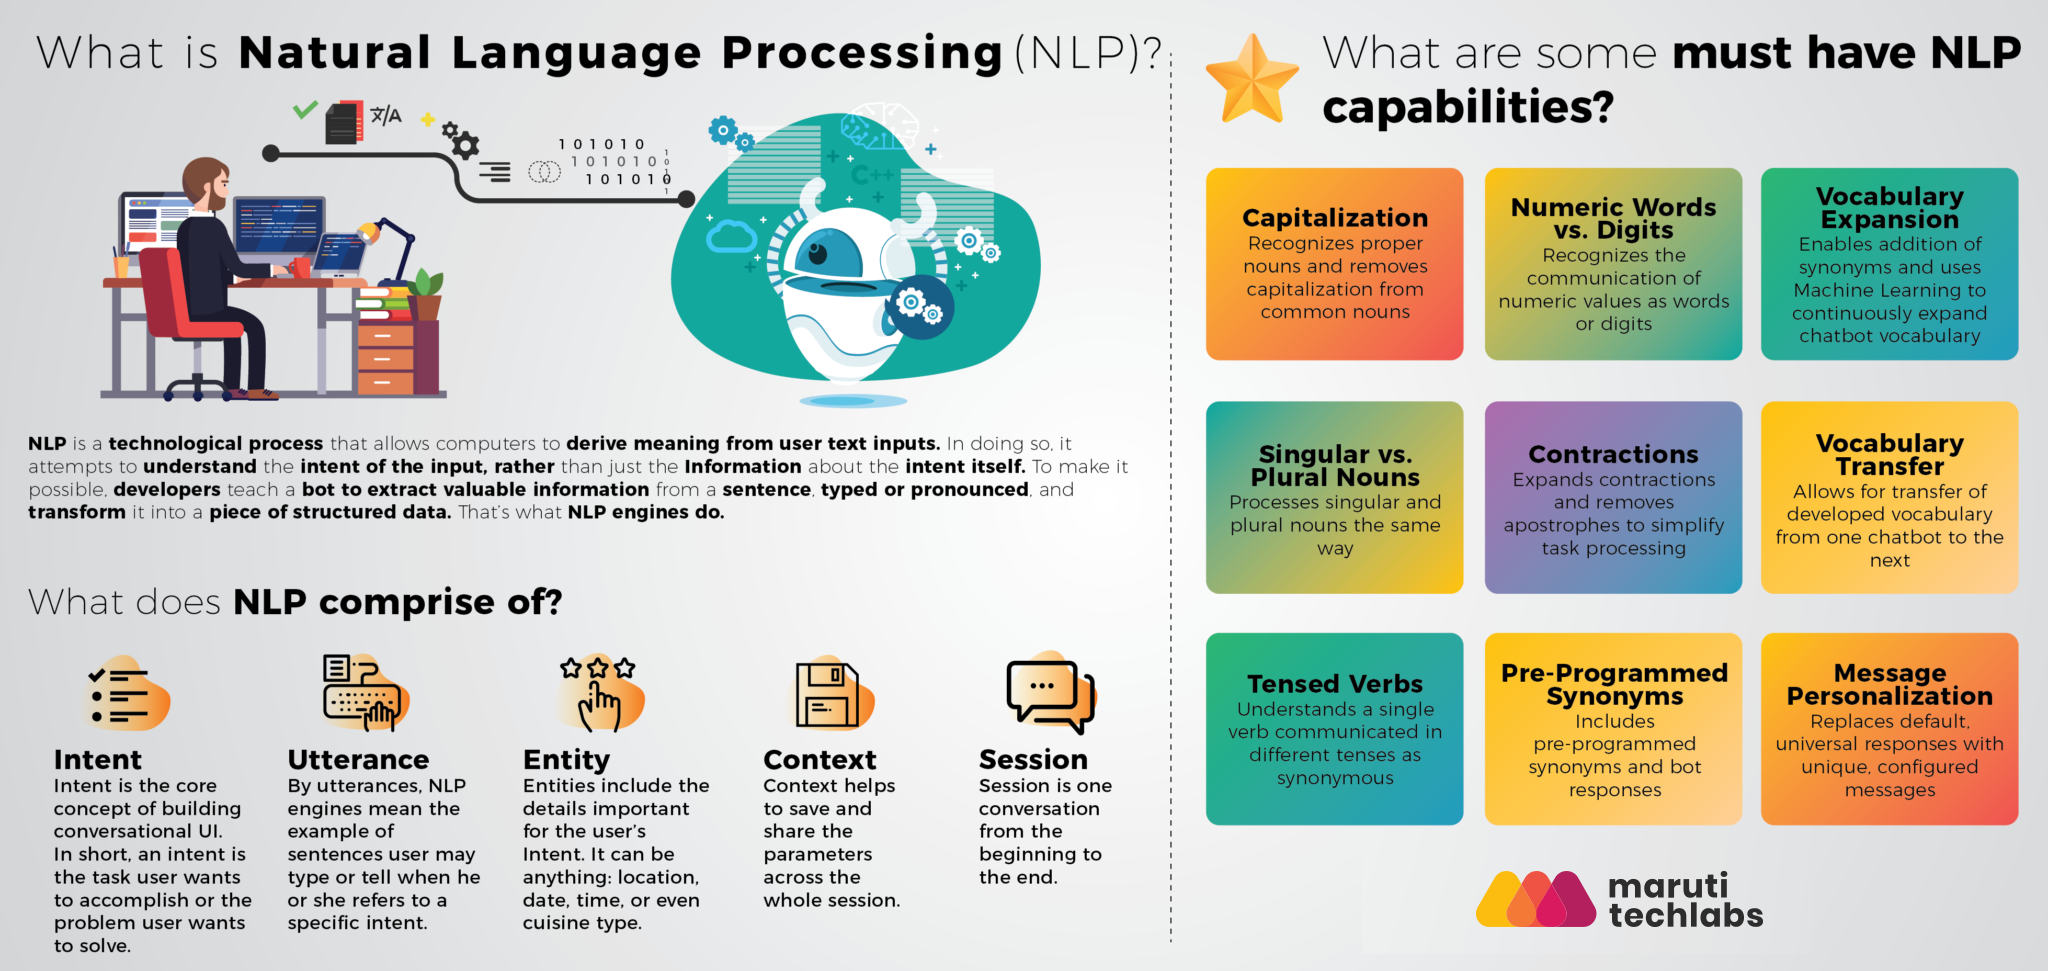 nlp-based-chatbots